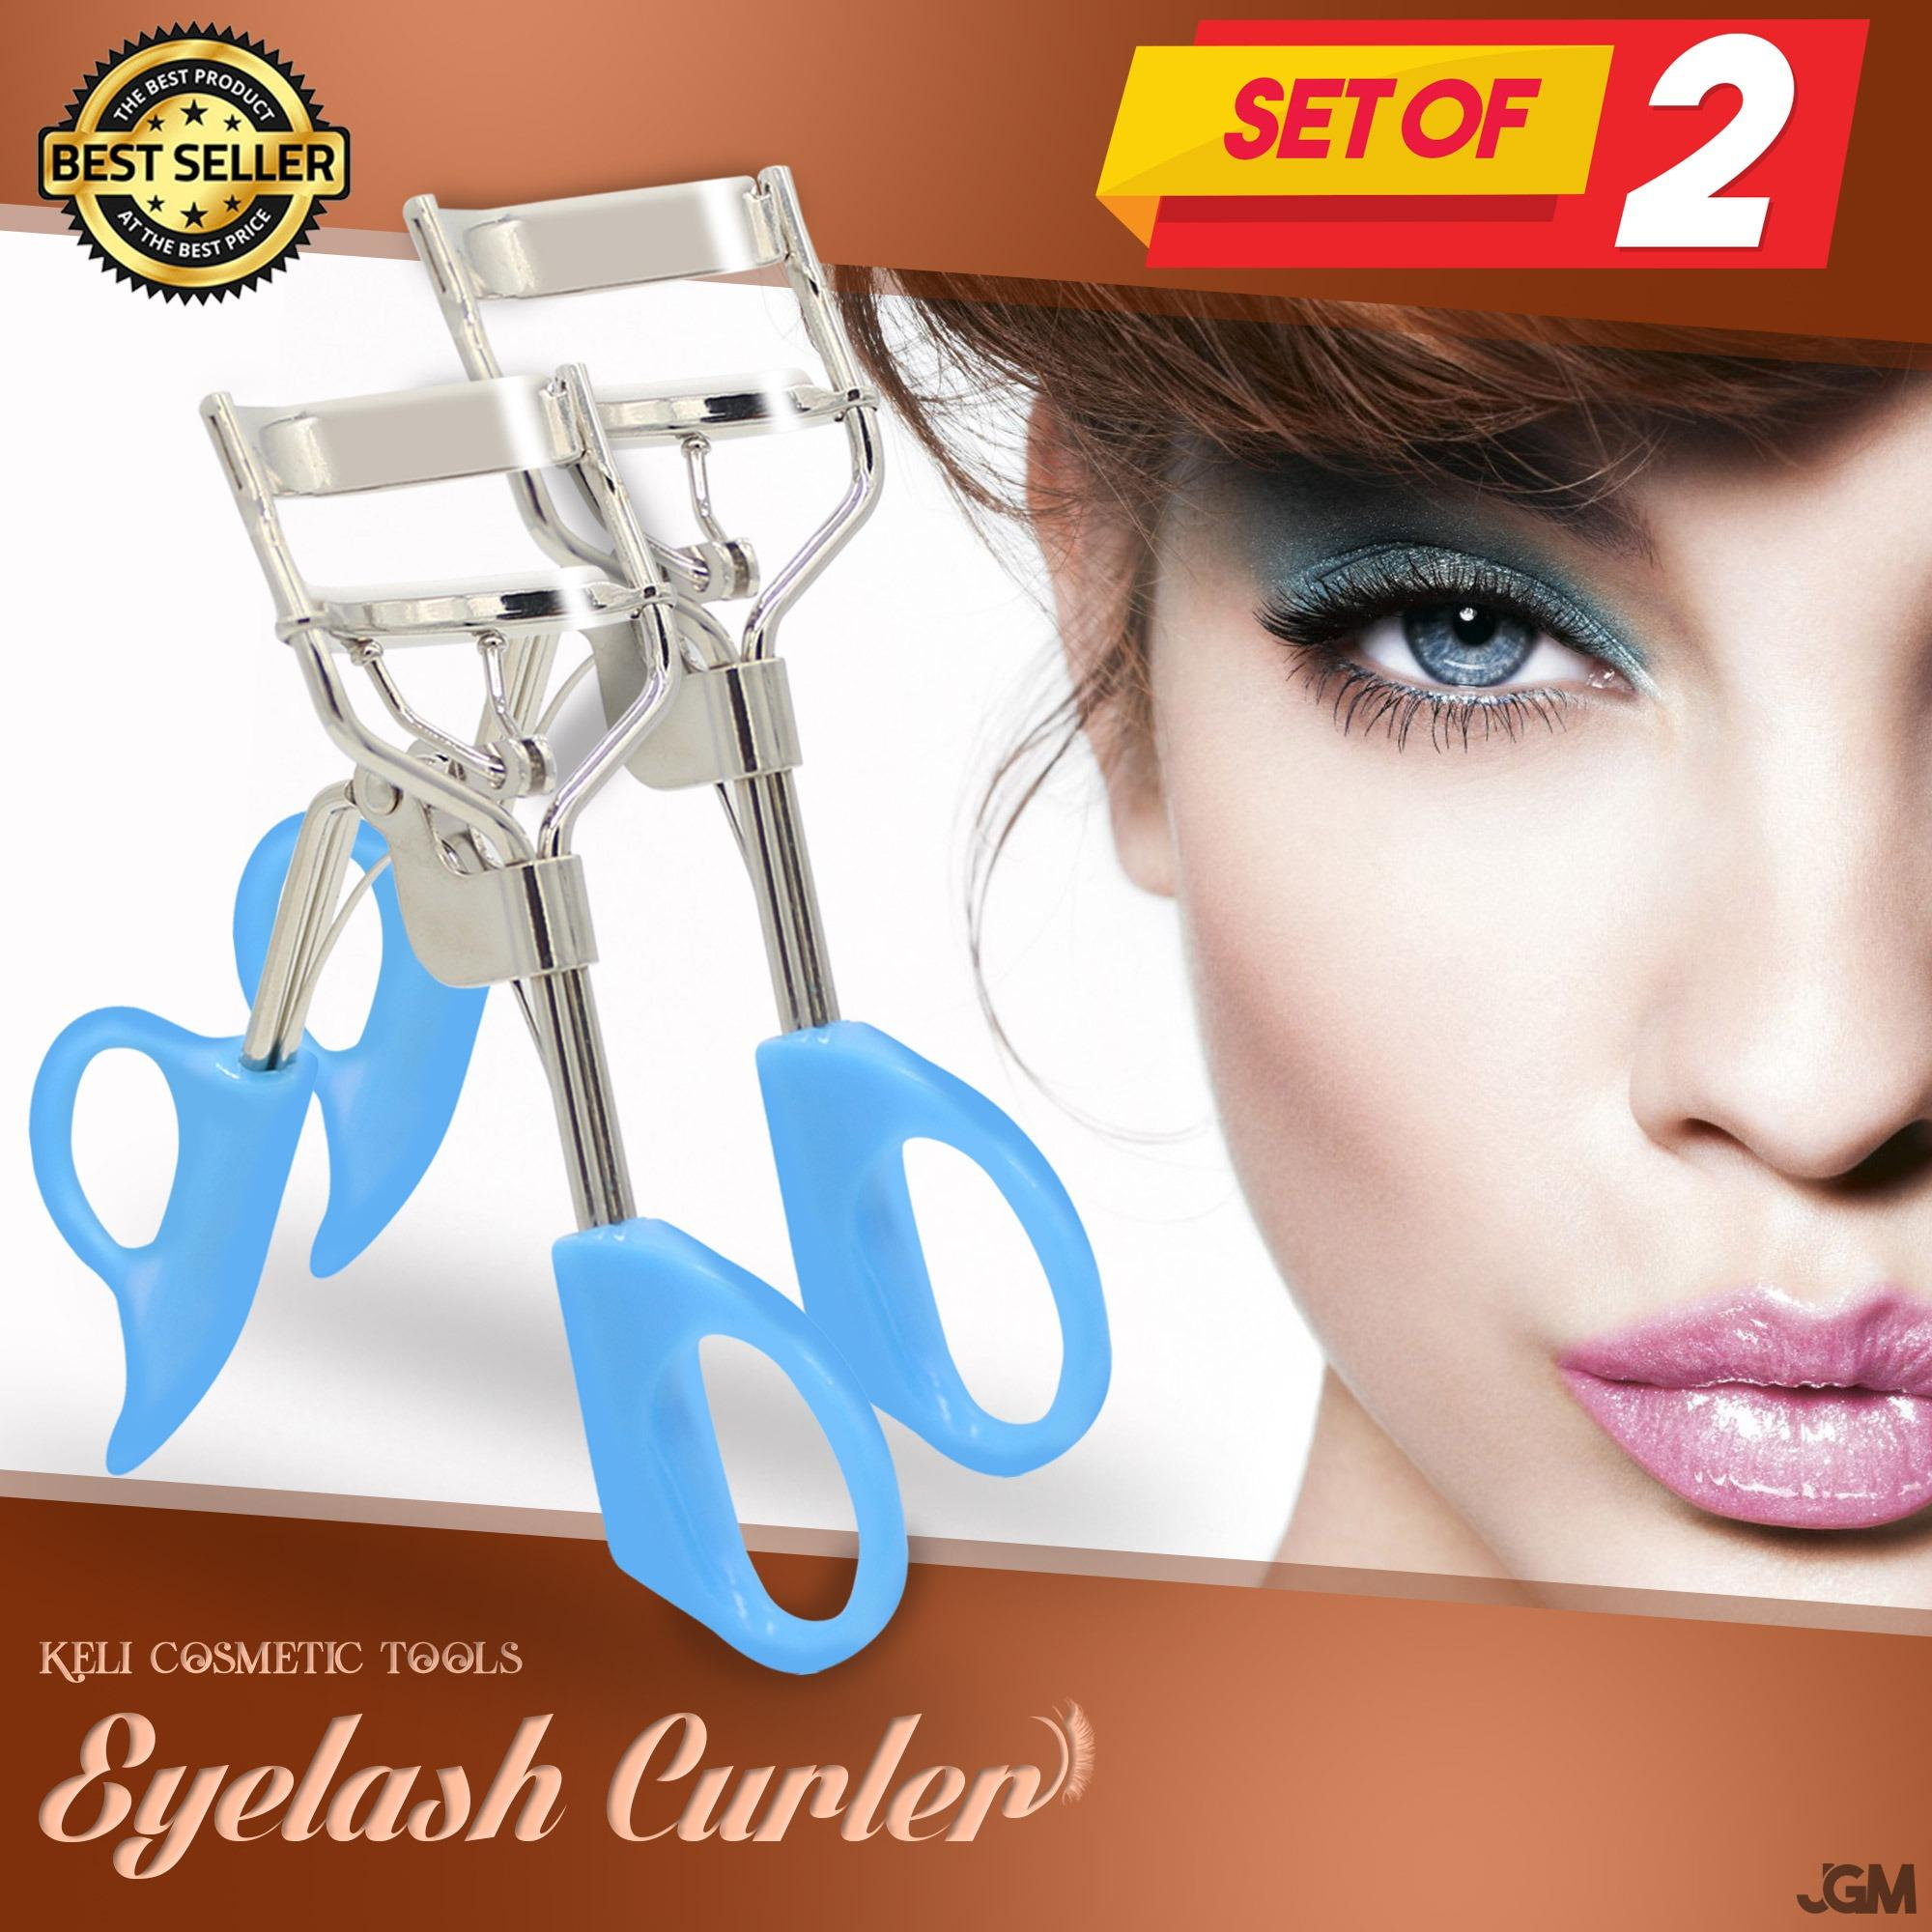 Keli Premium Long Lasting Eyelash Curler Easy To Use And Gives Your Eyelashes A Desired Curl SET OF 2 Philippines